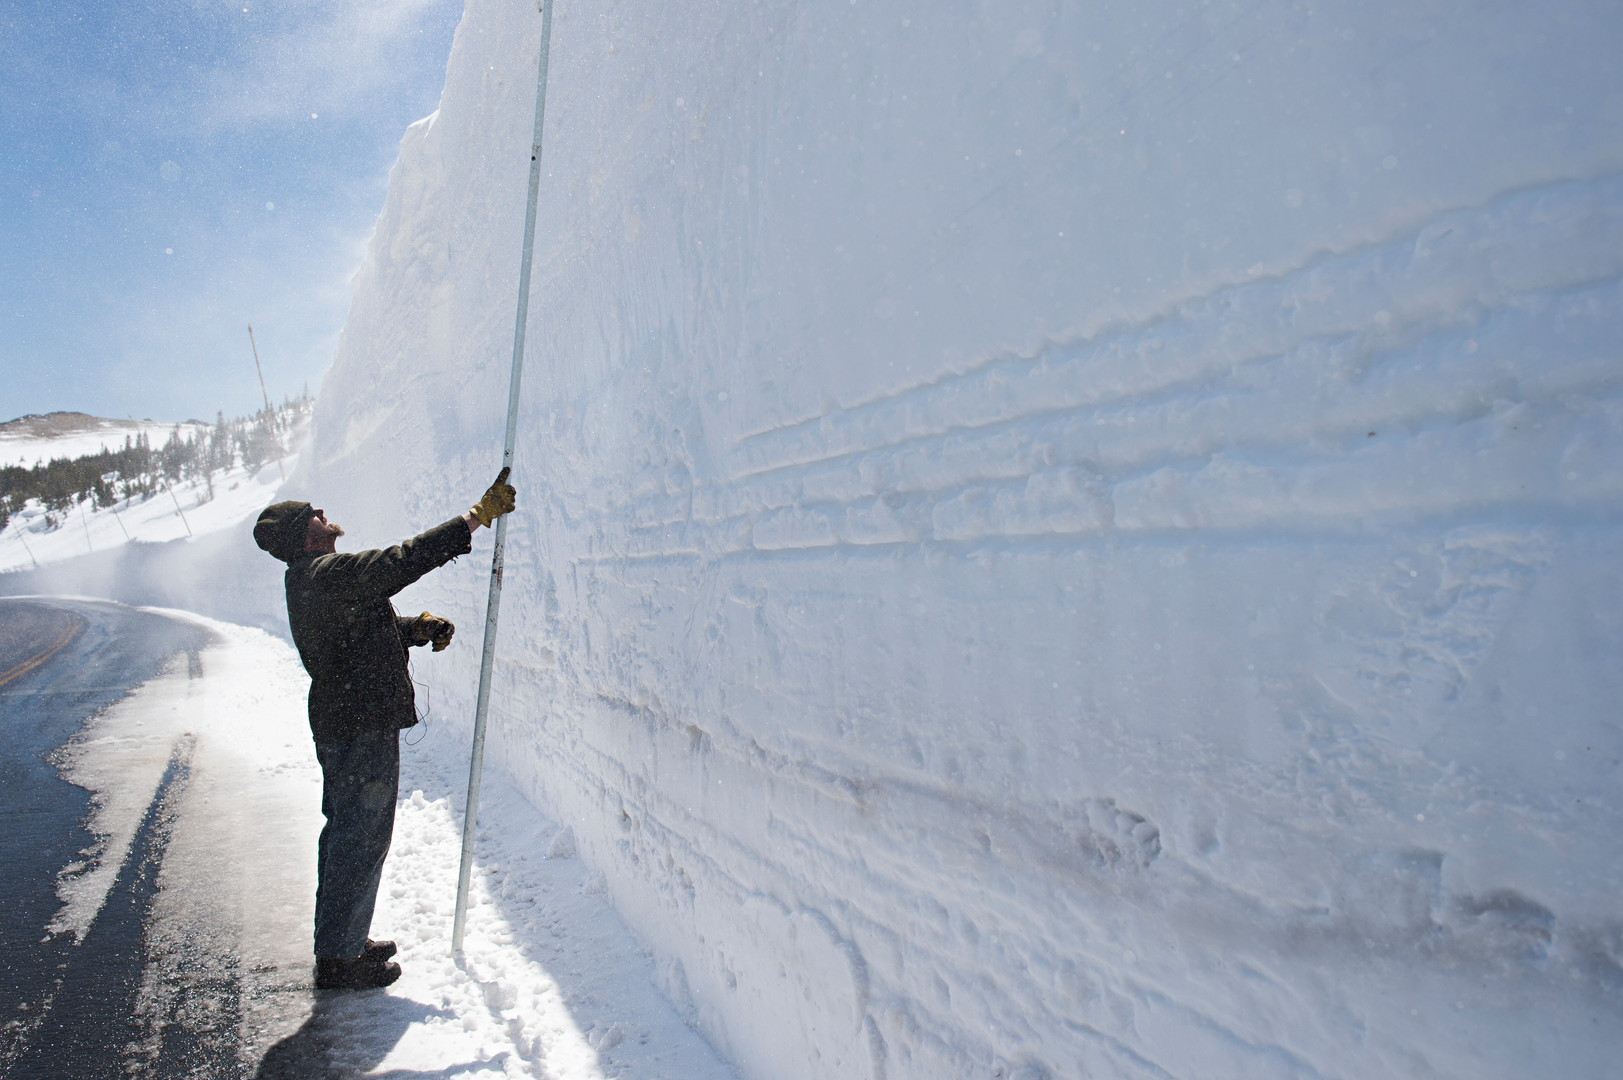 Todd Greer takes a measurement of a 19-foot snow drift on Trail Ridge Road in Rocky Mountain National Park Thursday, May 12, 2016. The road, topping out at over 12,000 feet in elevation, requires a five week snow removal operation to open around Memorial Day each year.